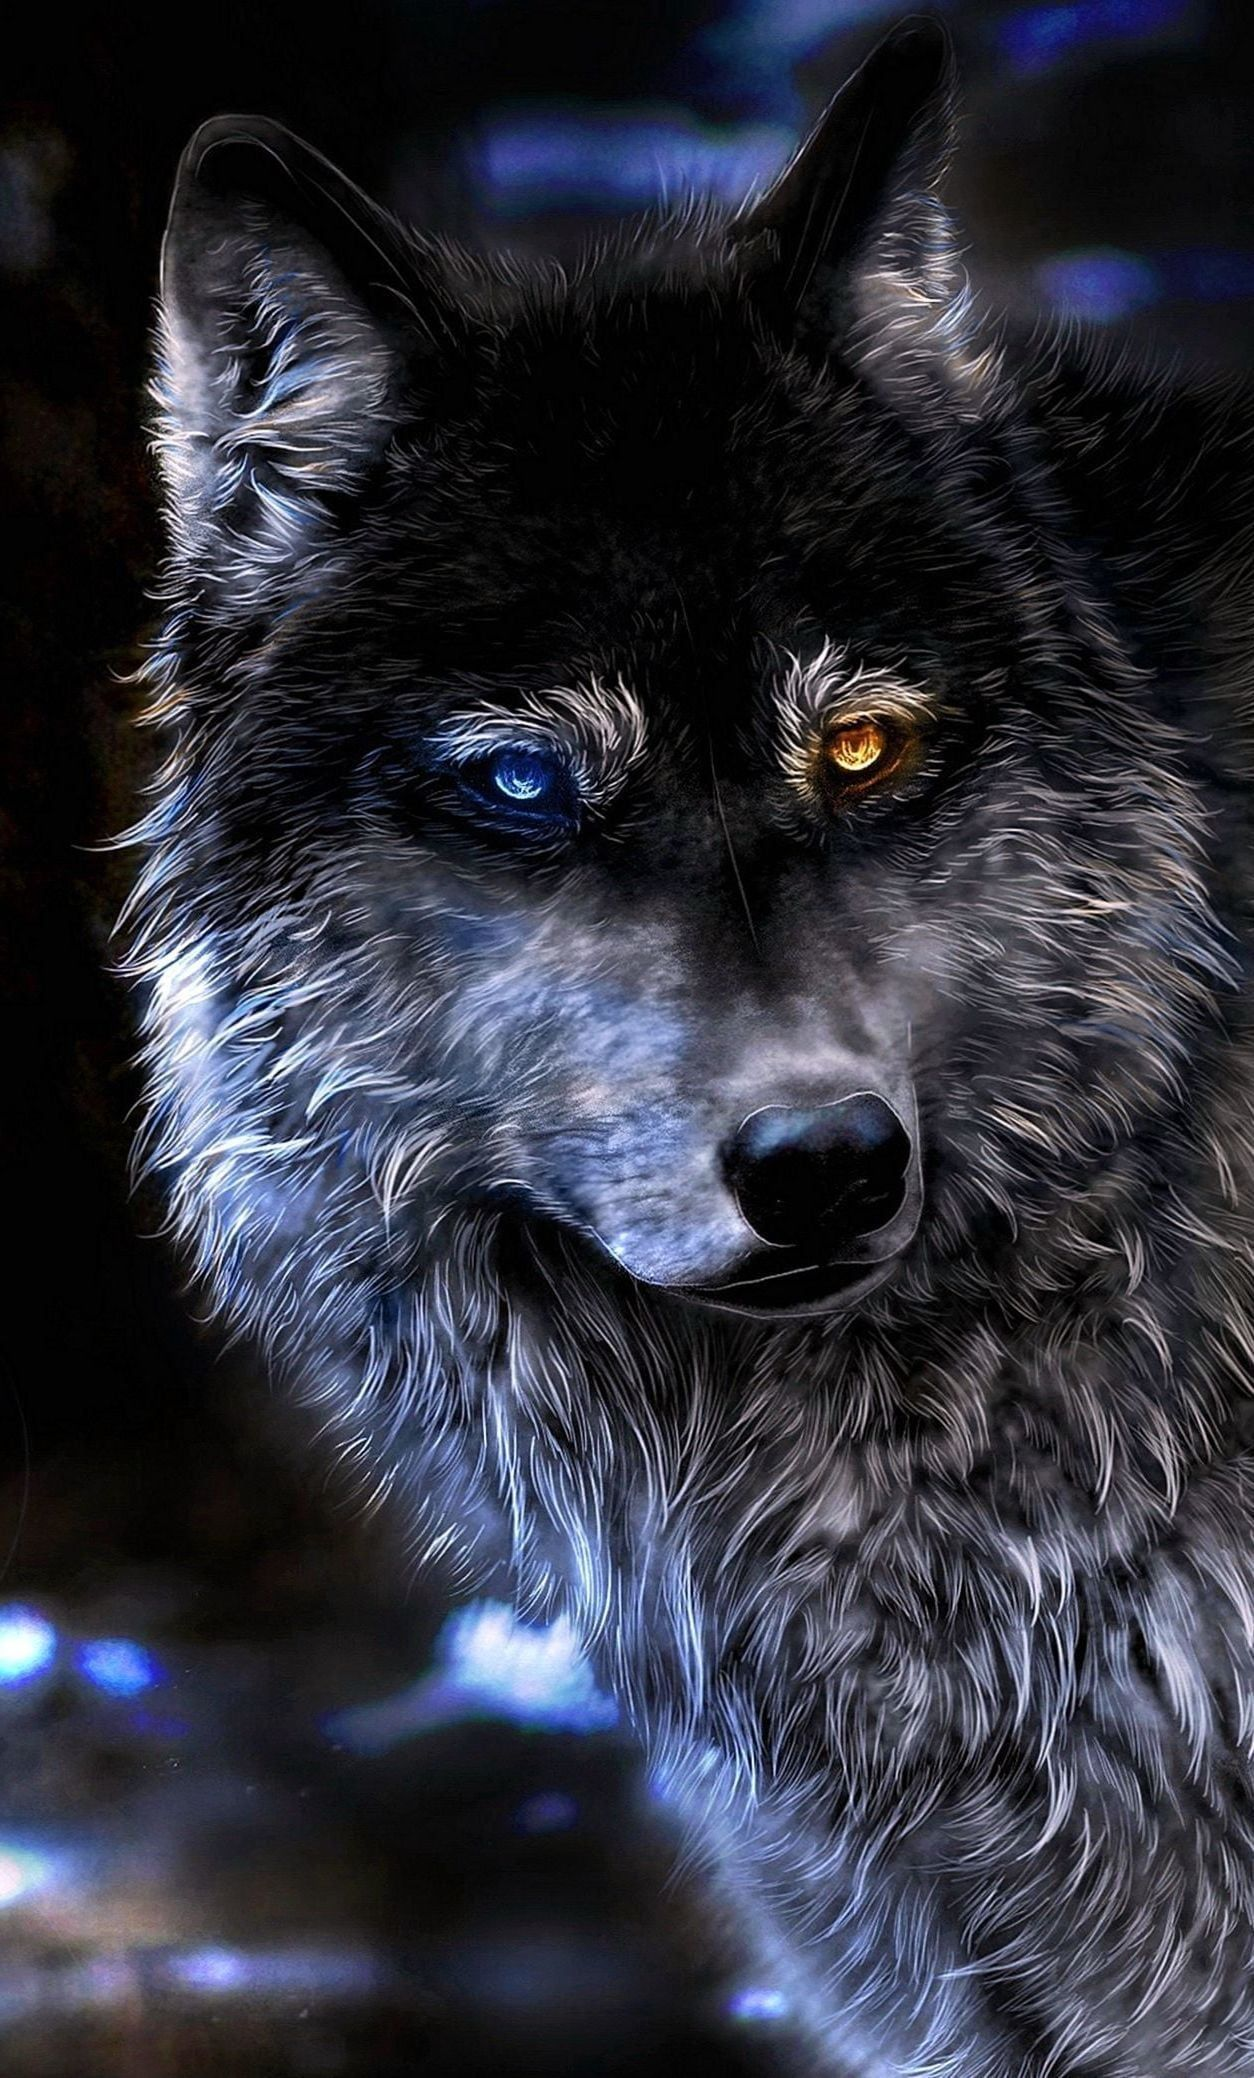 Angry Wolf Wallpapers 4k Iphone Angry Wolf Wallpapers 4k Iphone Wolf Wallpaper Iphone Wallpaper Wolf Angry Wolf